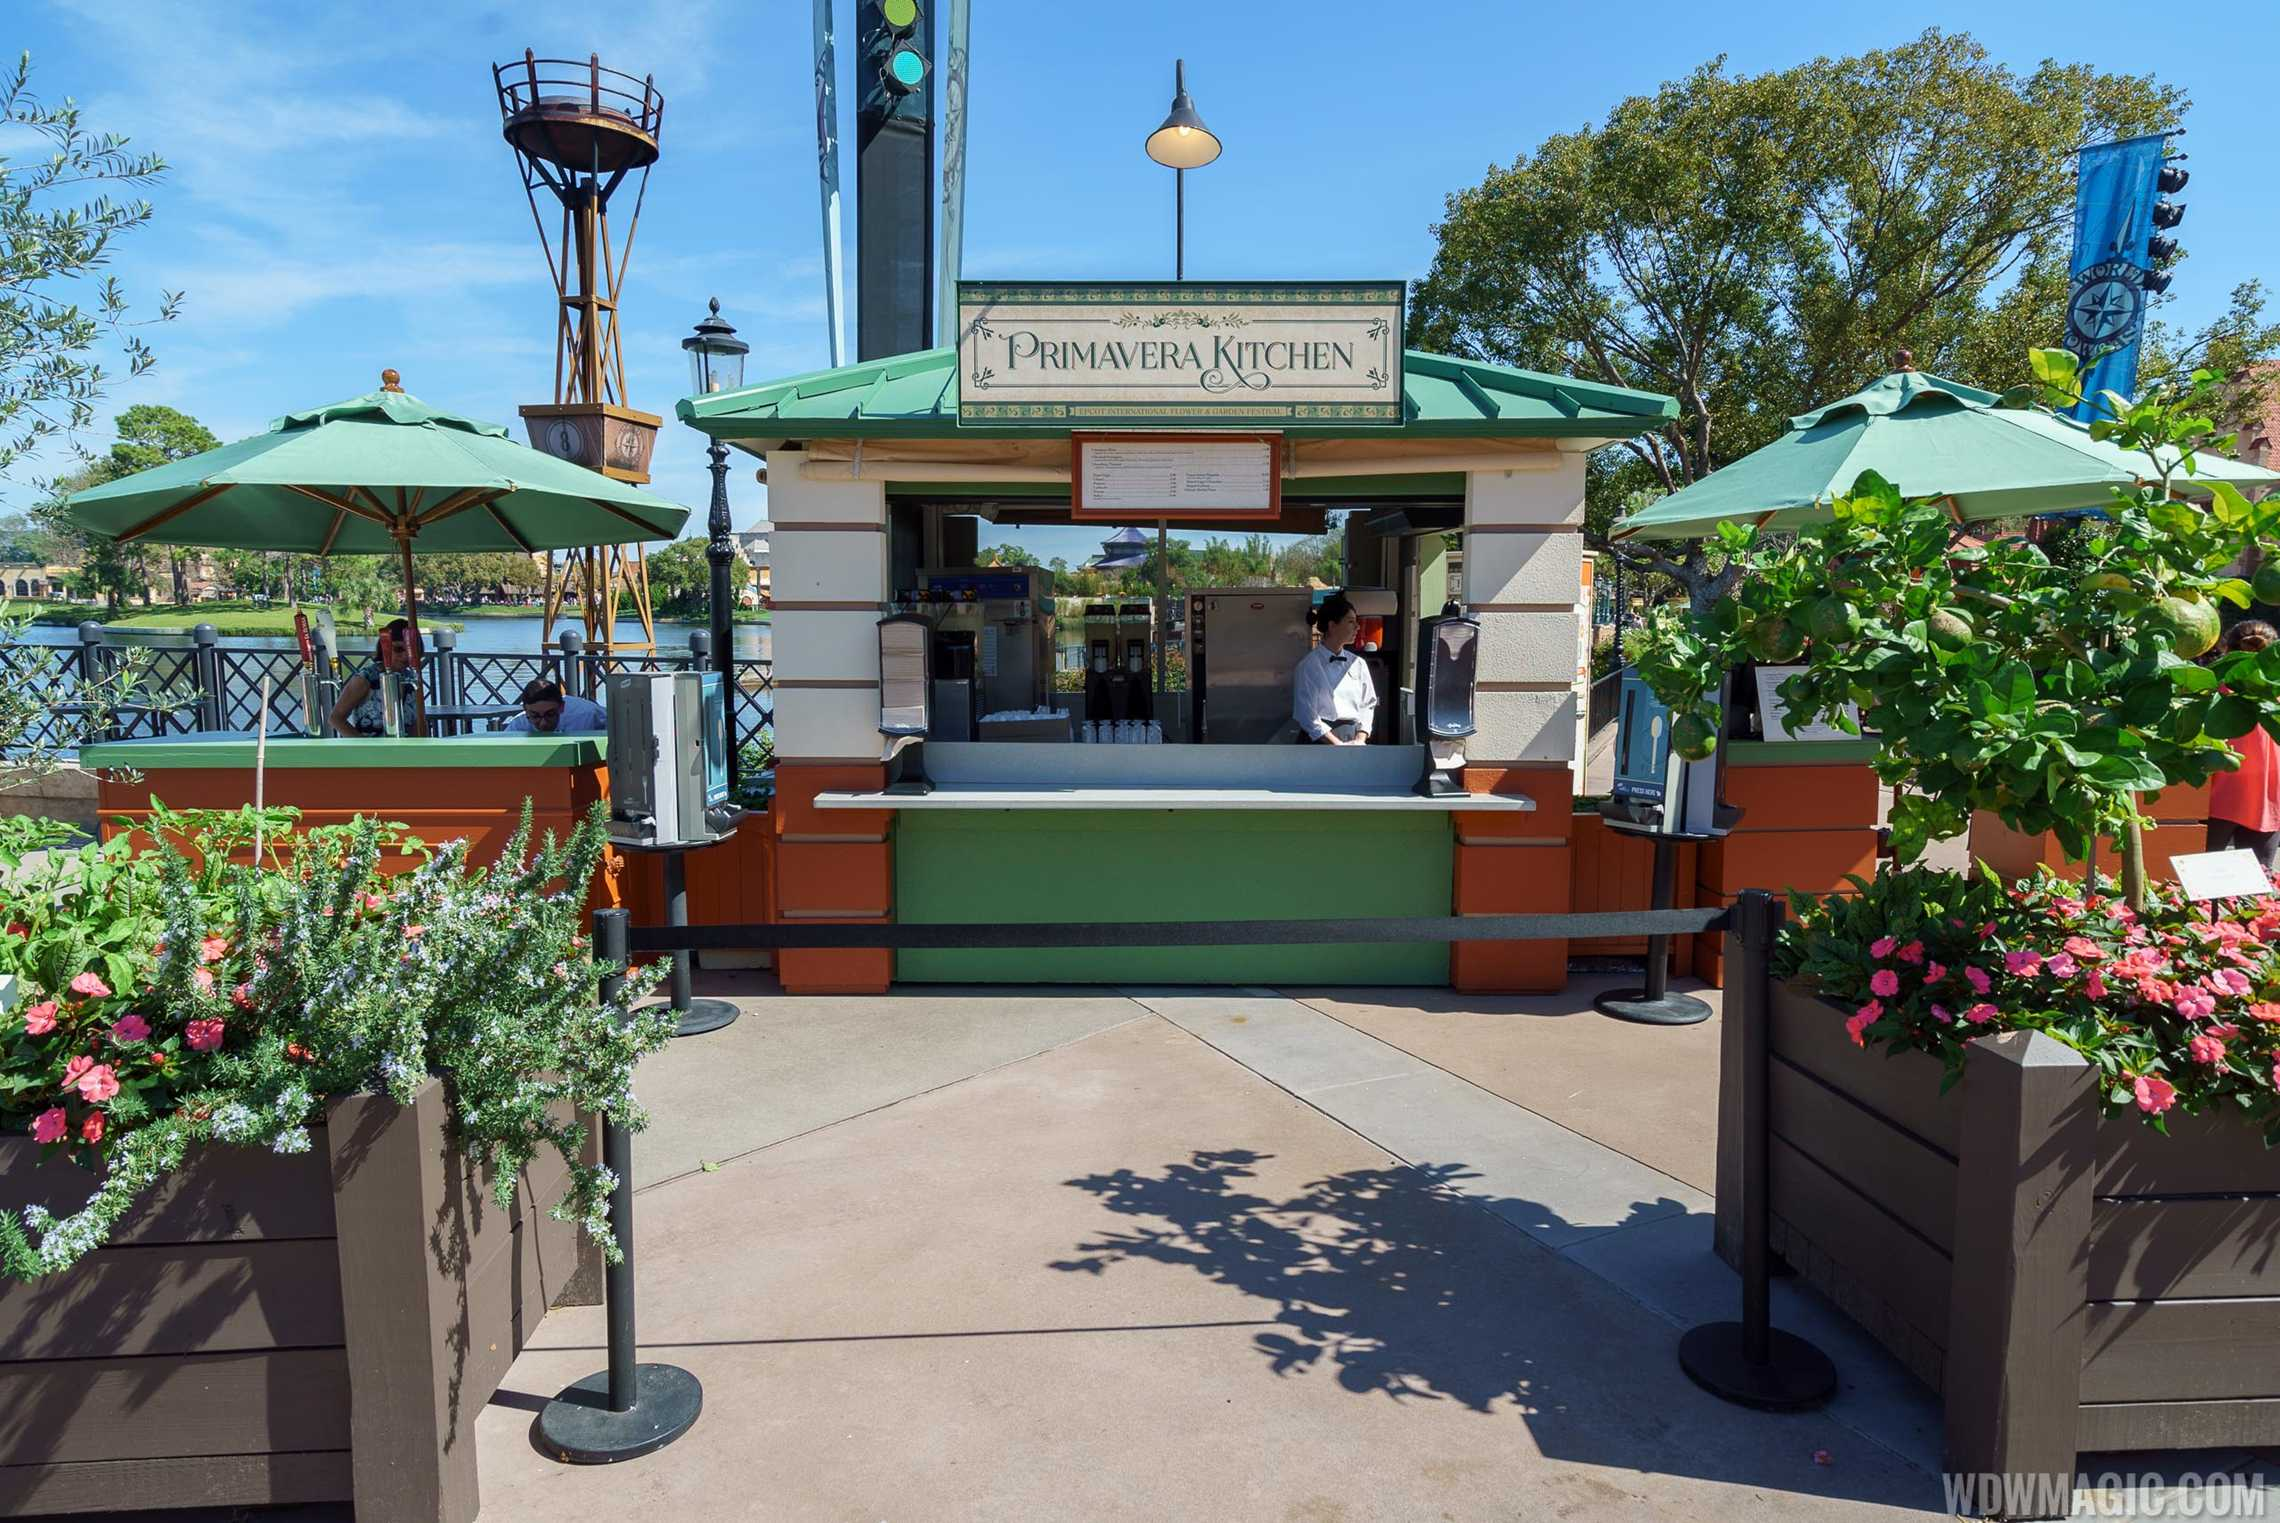 2017 Epcot Flower And Garden Festival Outdoor Kitchen Kiosks And Menus Photo 21 Of 25